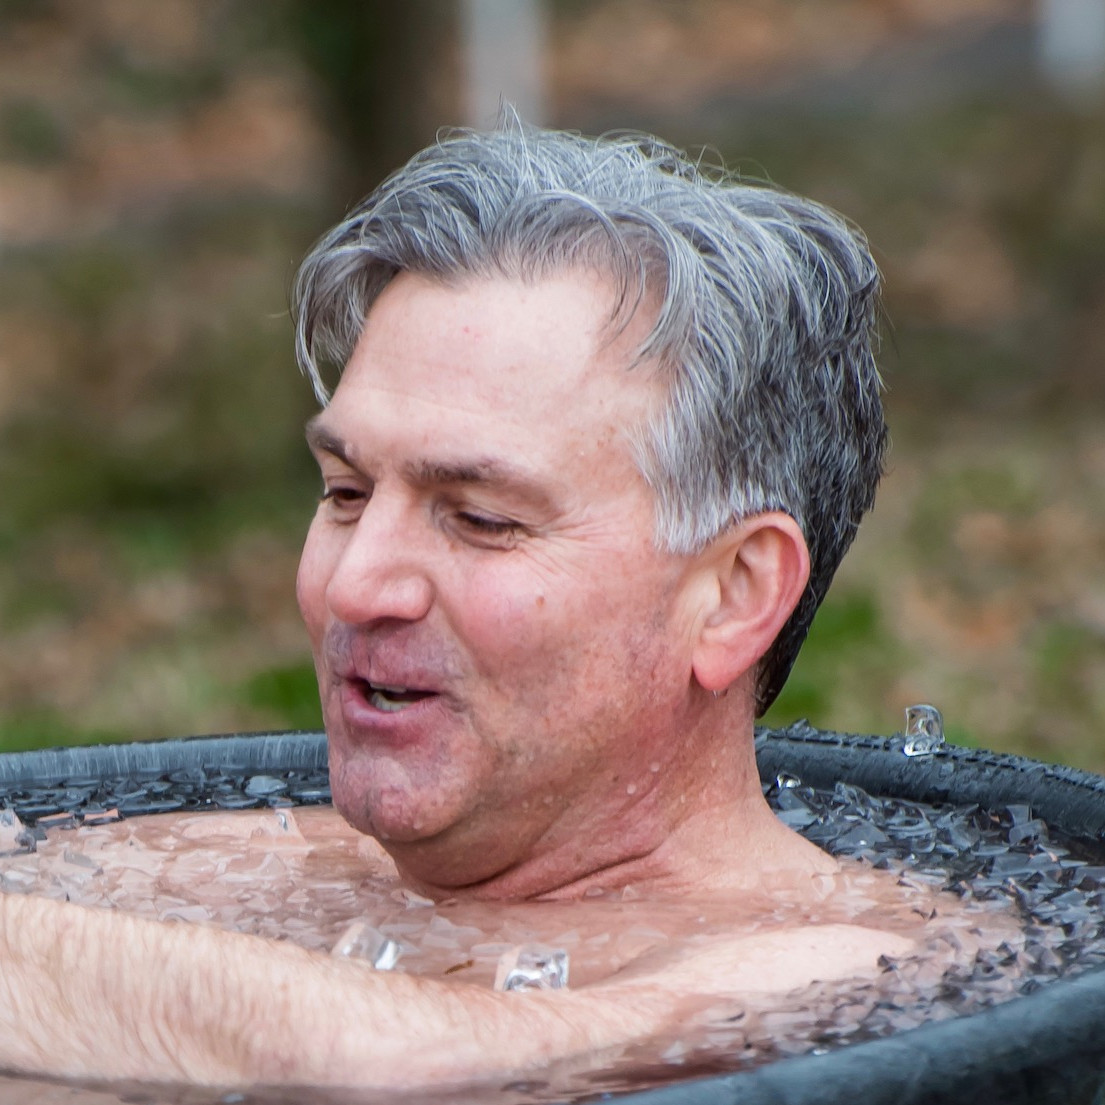 Bill Cords will be your instructor for WIM HOF METHOD FUNDAMENTALS WORKSHOP - MD / DC AREA at Hollywood, MD.